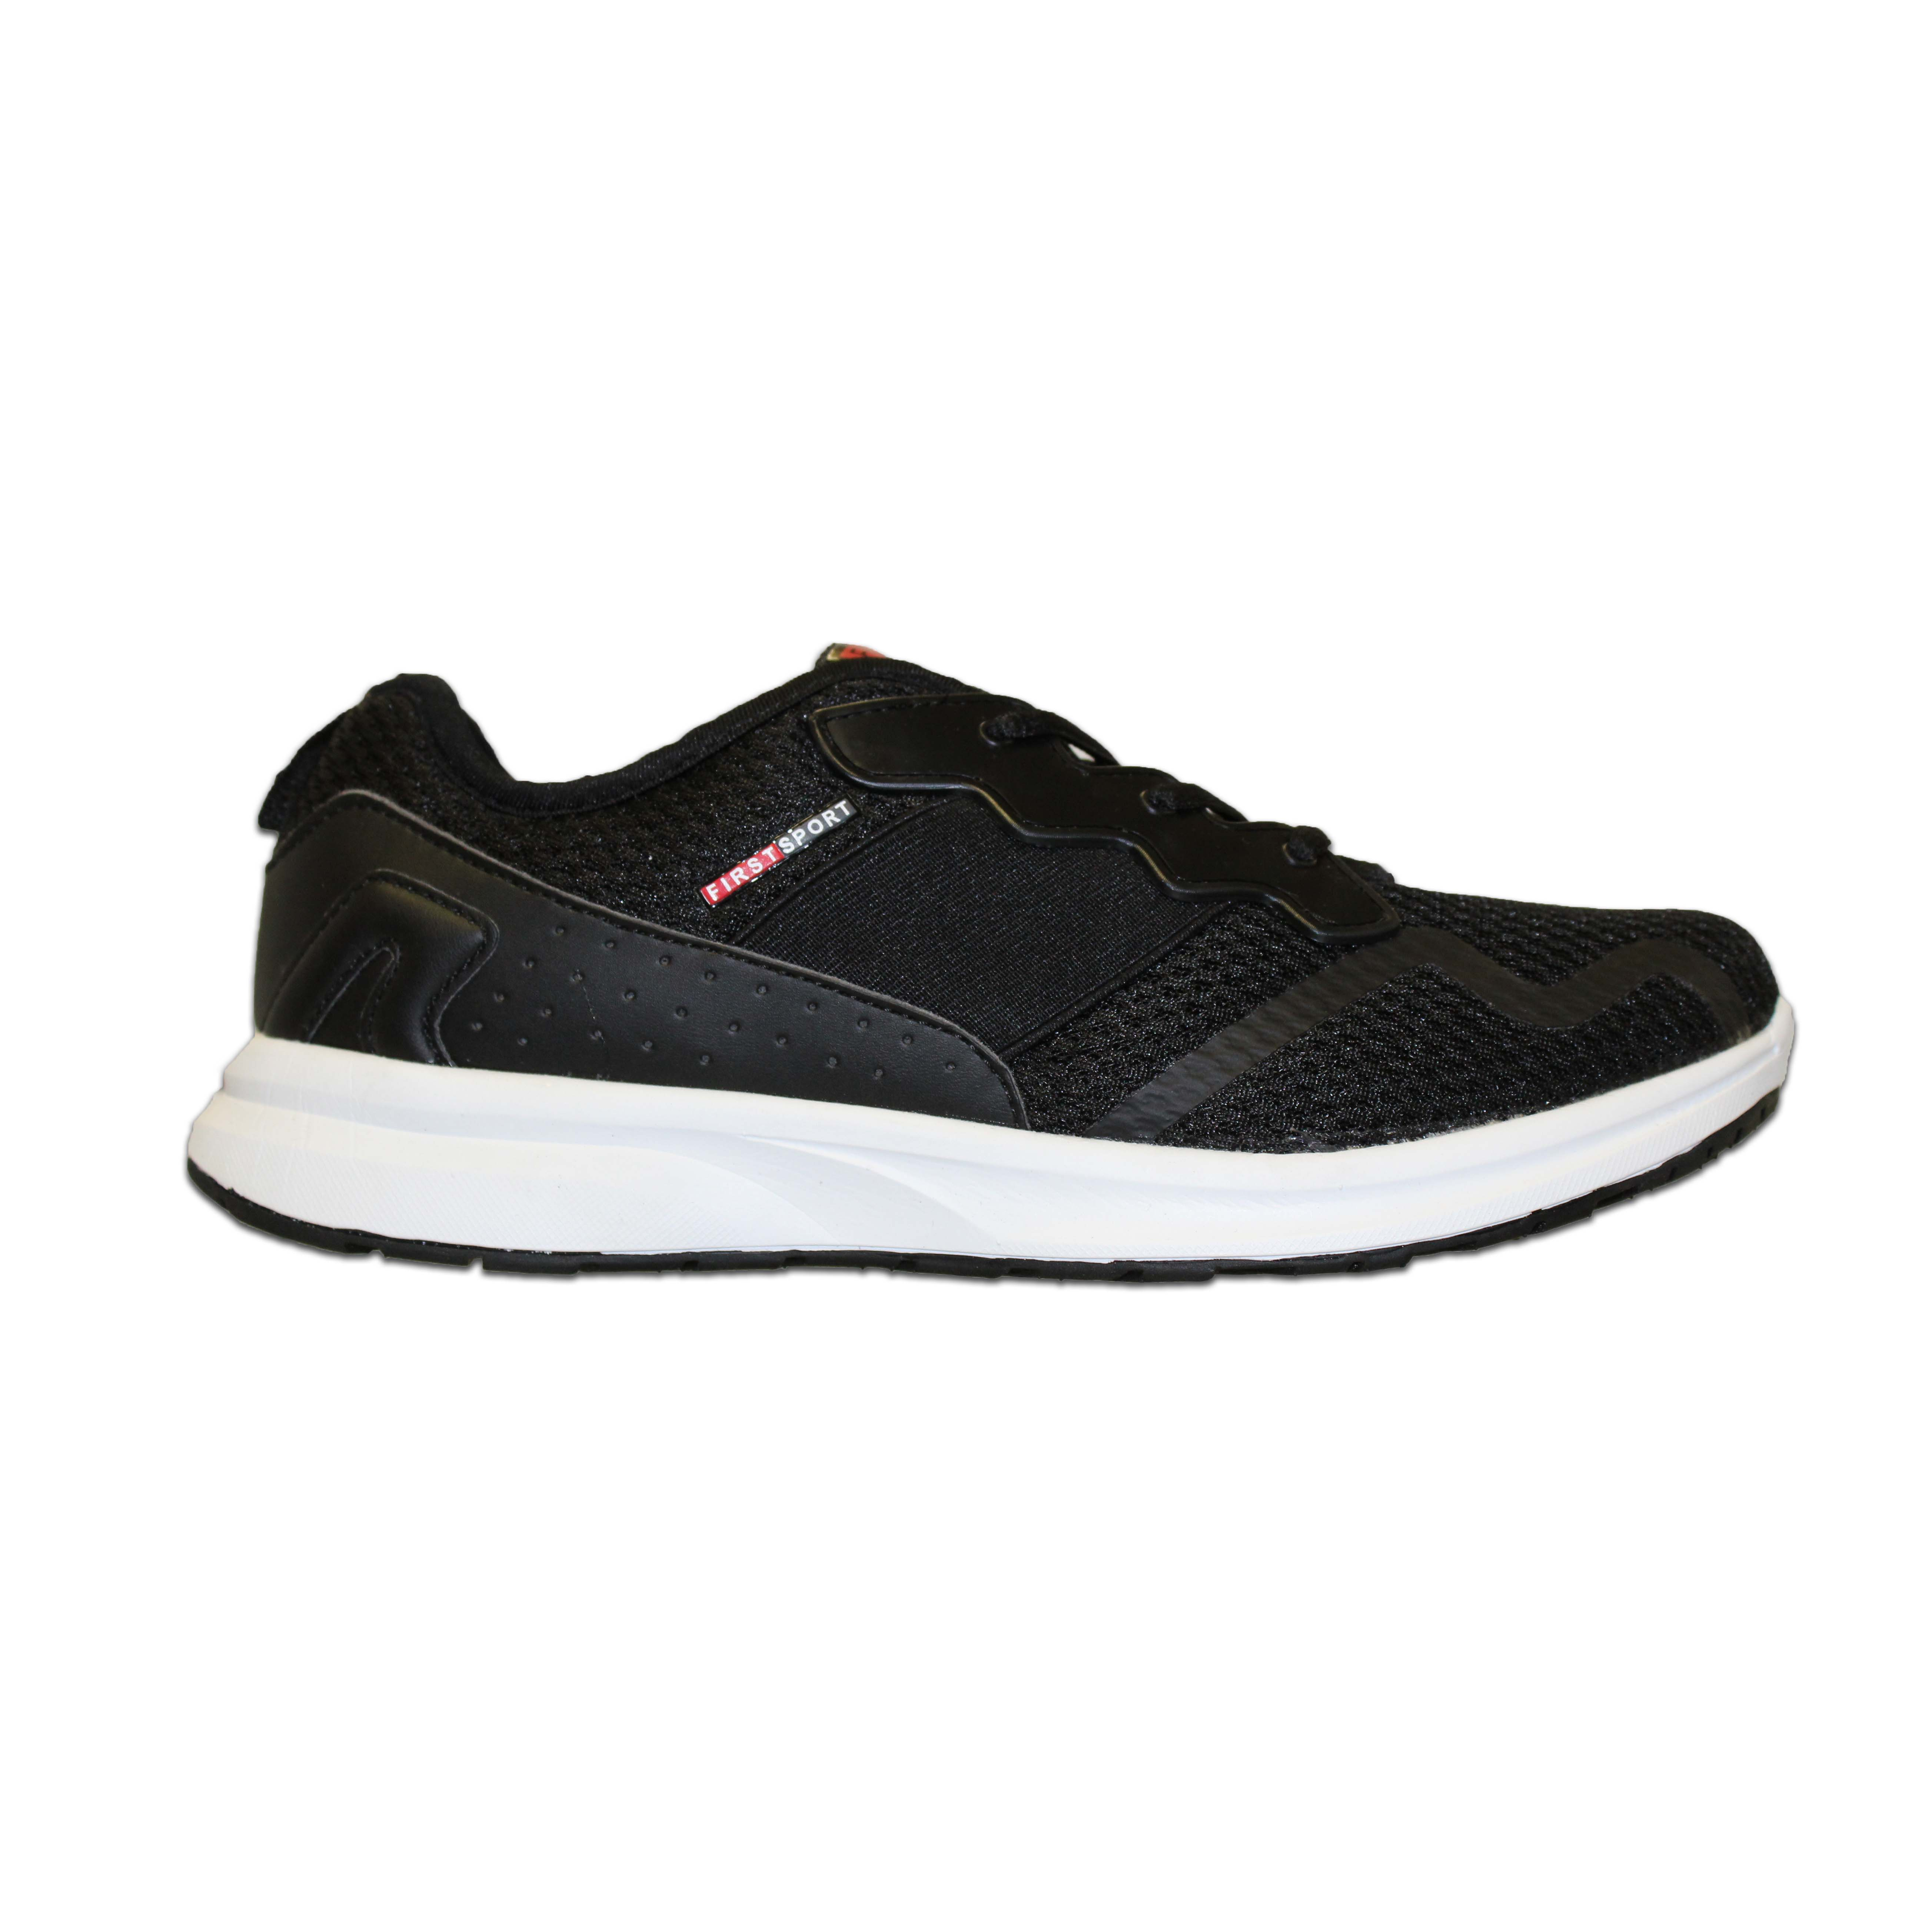 new style f739c b09bd (sale) First Sport Men Running Shoes: (08041) Black